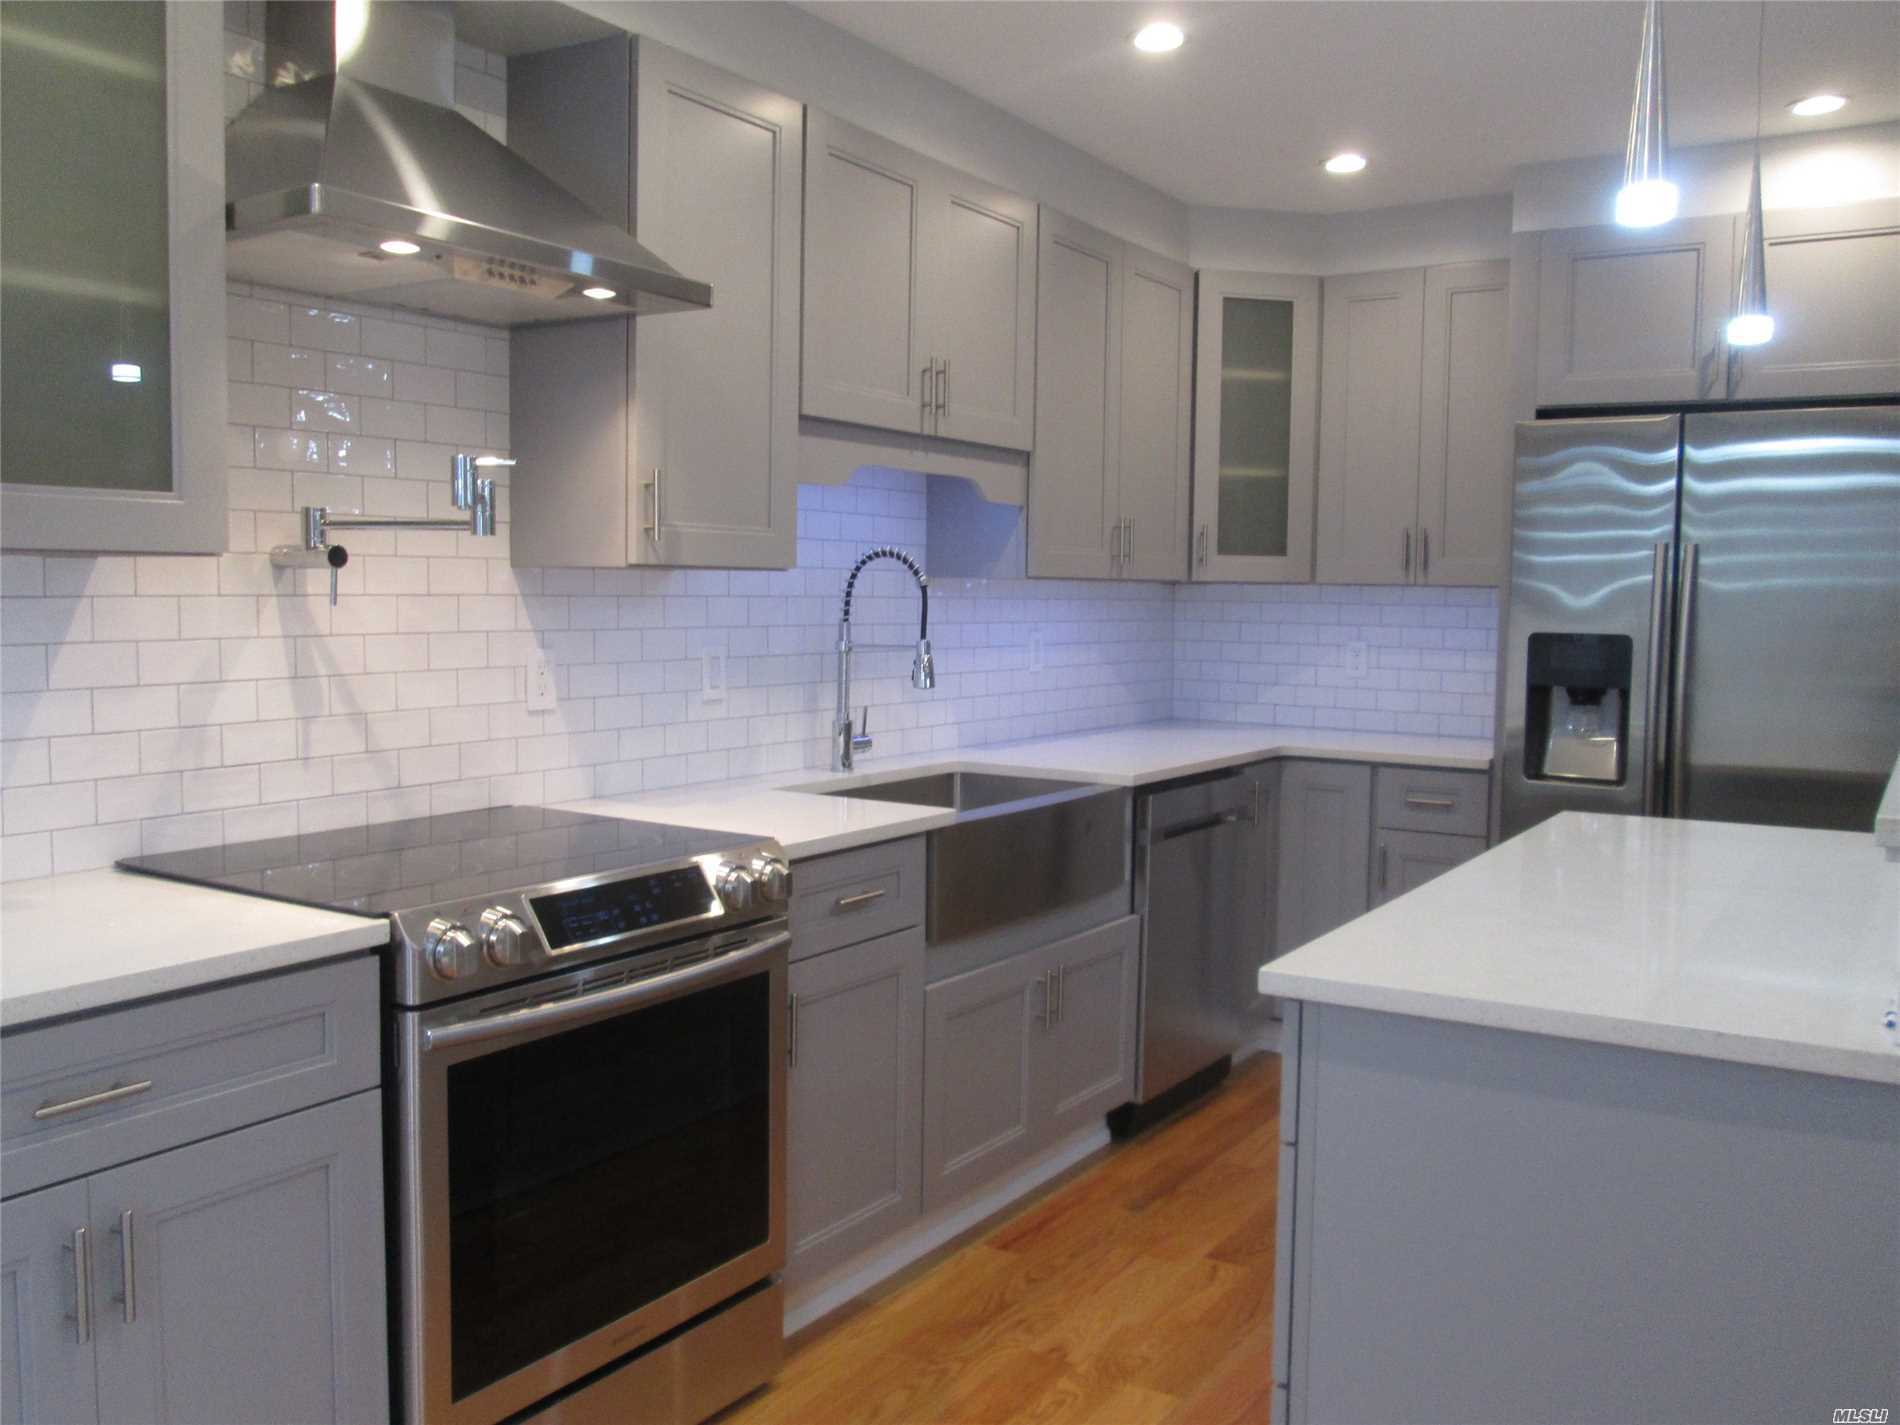 This Completely Renovated 4 Br 2 Bath Exp Cape Boasts A Gourmet Kitchen W/ Ss Appliances, Quartz Counter Tops & Top Line Appliances, Mbr En Suite W/ Spa Shower, Full Finished Basement/Play Room. Private Corner Property W/ Det Garage. Energy Efficient Split Heat/Ac Systems. Don't Miss This Golden Opportunity To Live In Renowned Plainview/Old Bethpage Sd!